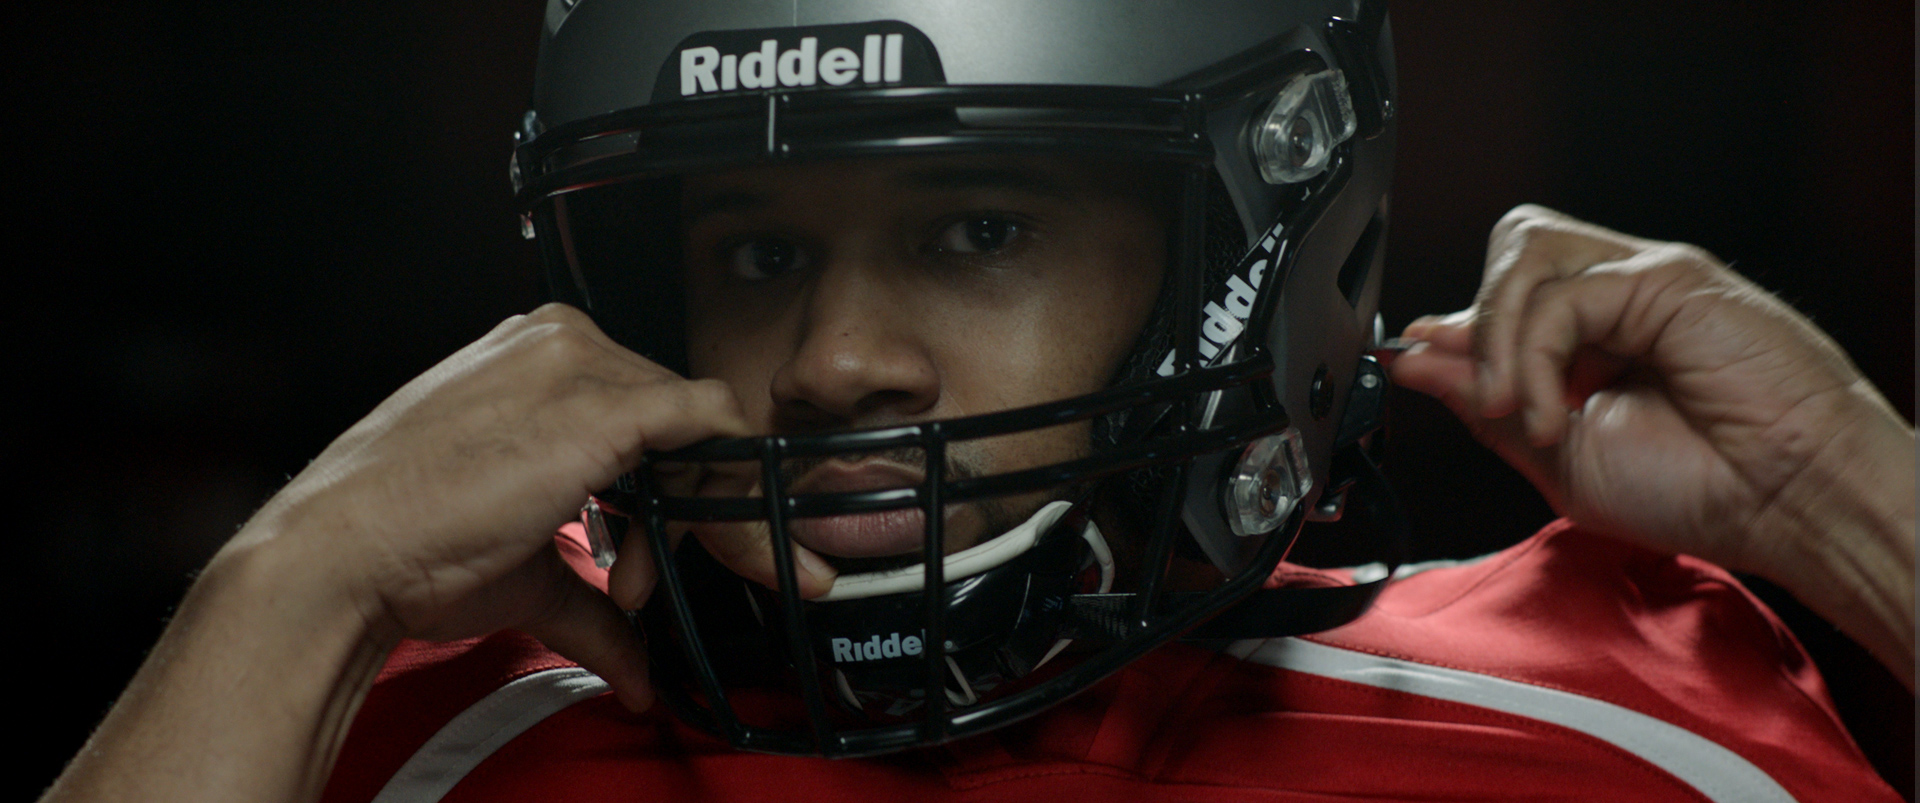 Carbon + Riddell - What Do You Protect?